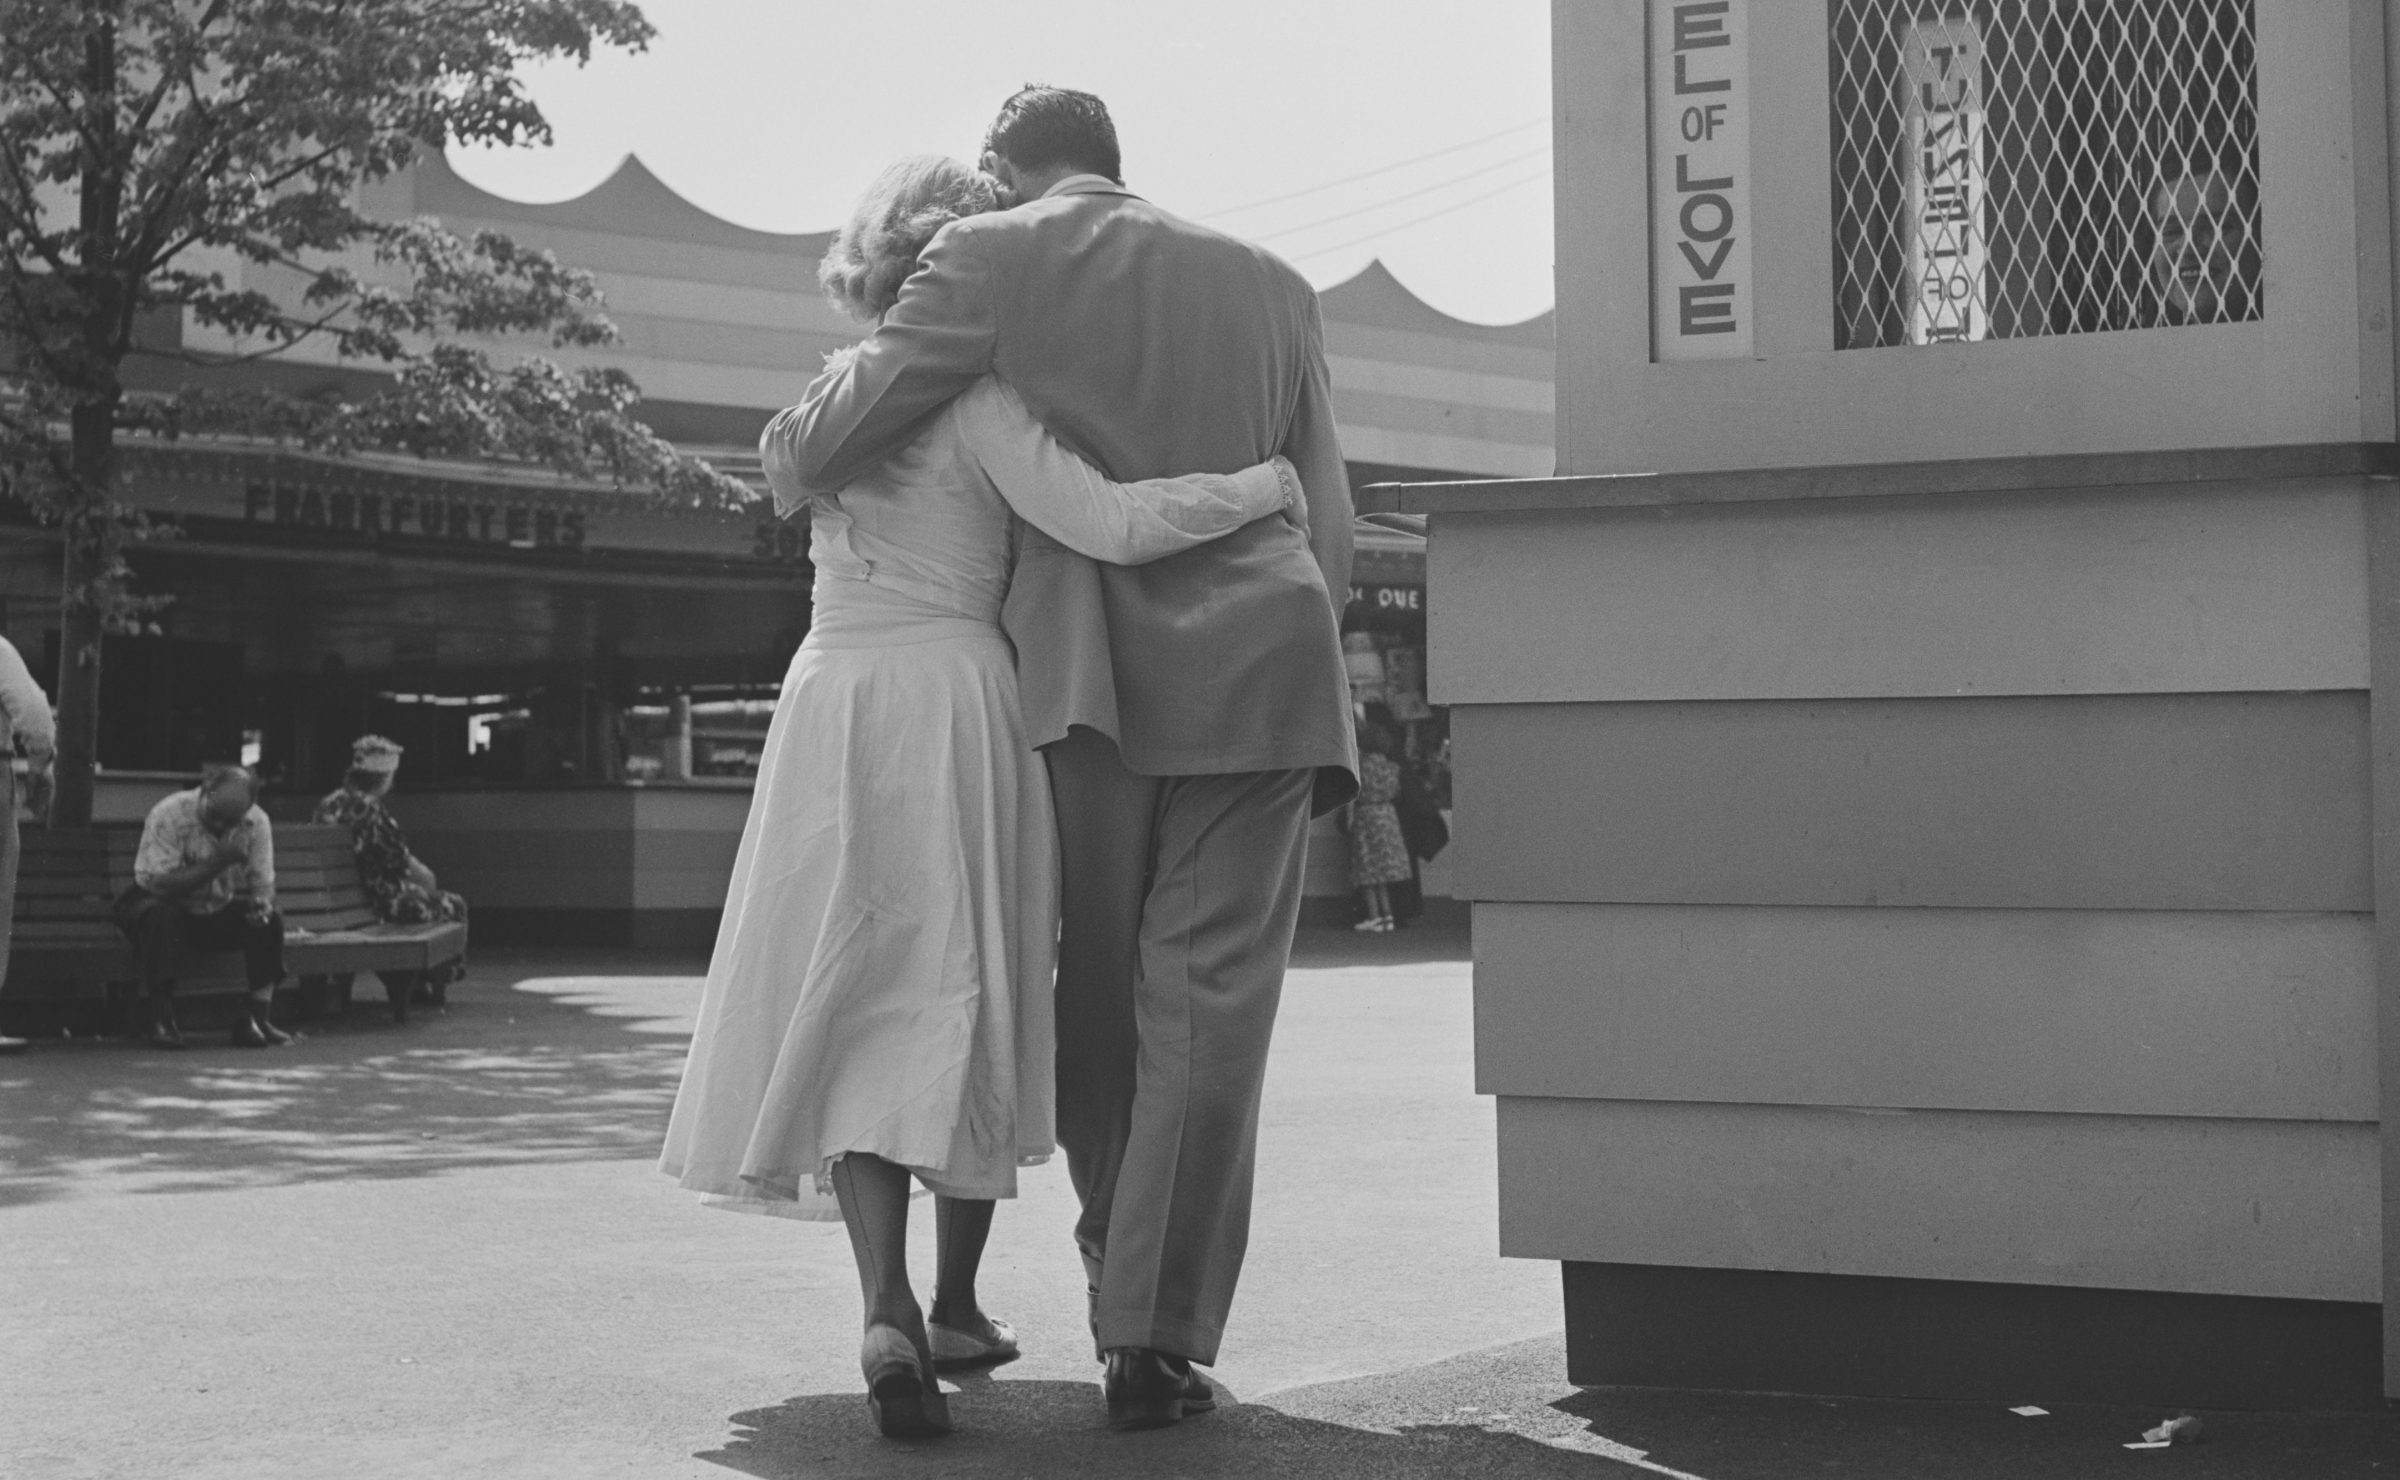 A couple walk toward a Tunnel Of Love with their arms around each other's waists.